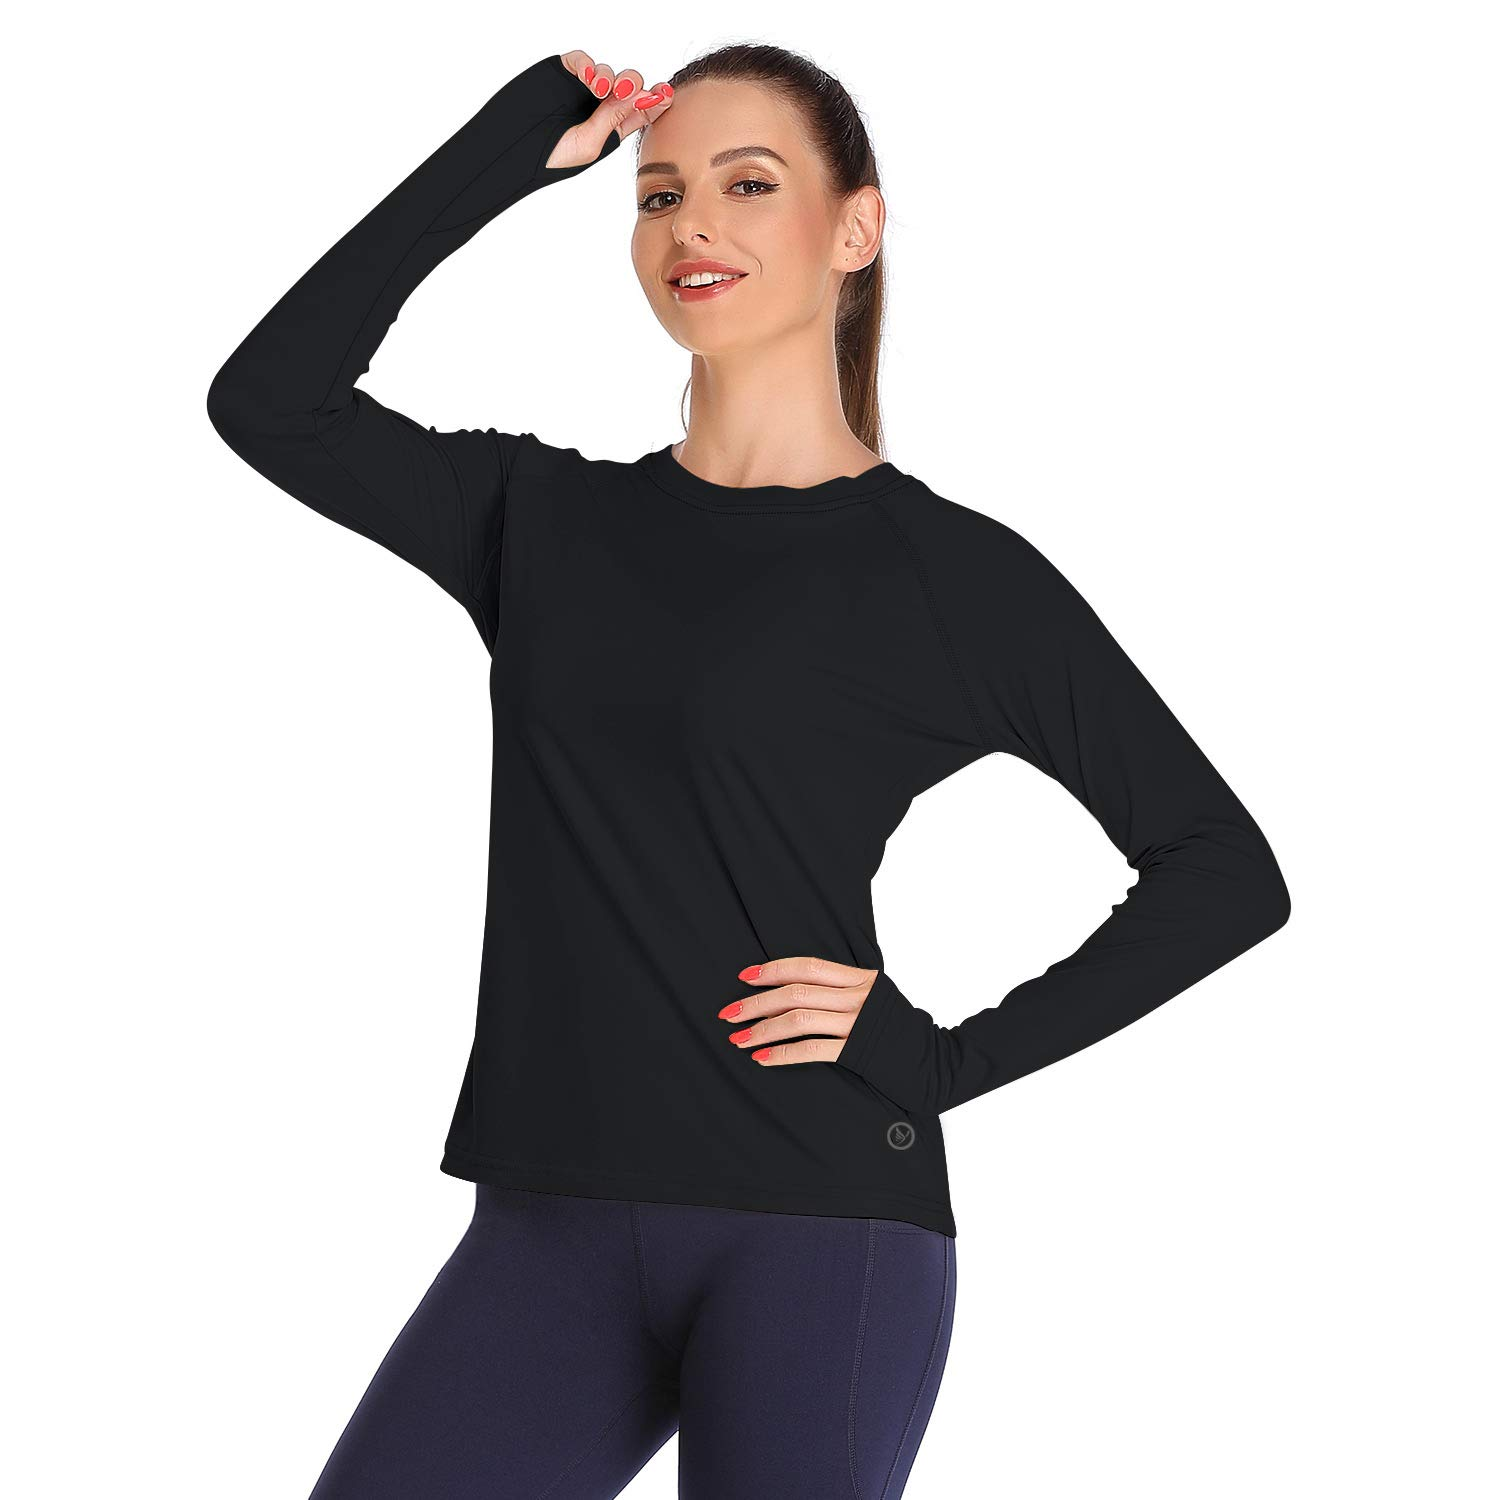 DAYOUNG Womens UPF 50+ UV Sun Protection Running Hiking Outdoors Performance Long Sleeve T-Shirt Athletic Top with Thumb Hole YWT11 Black XL by DAYOUNG